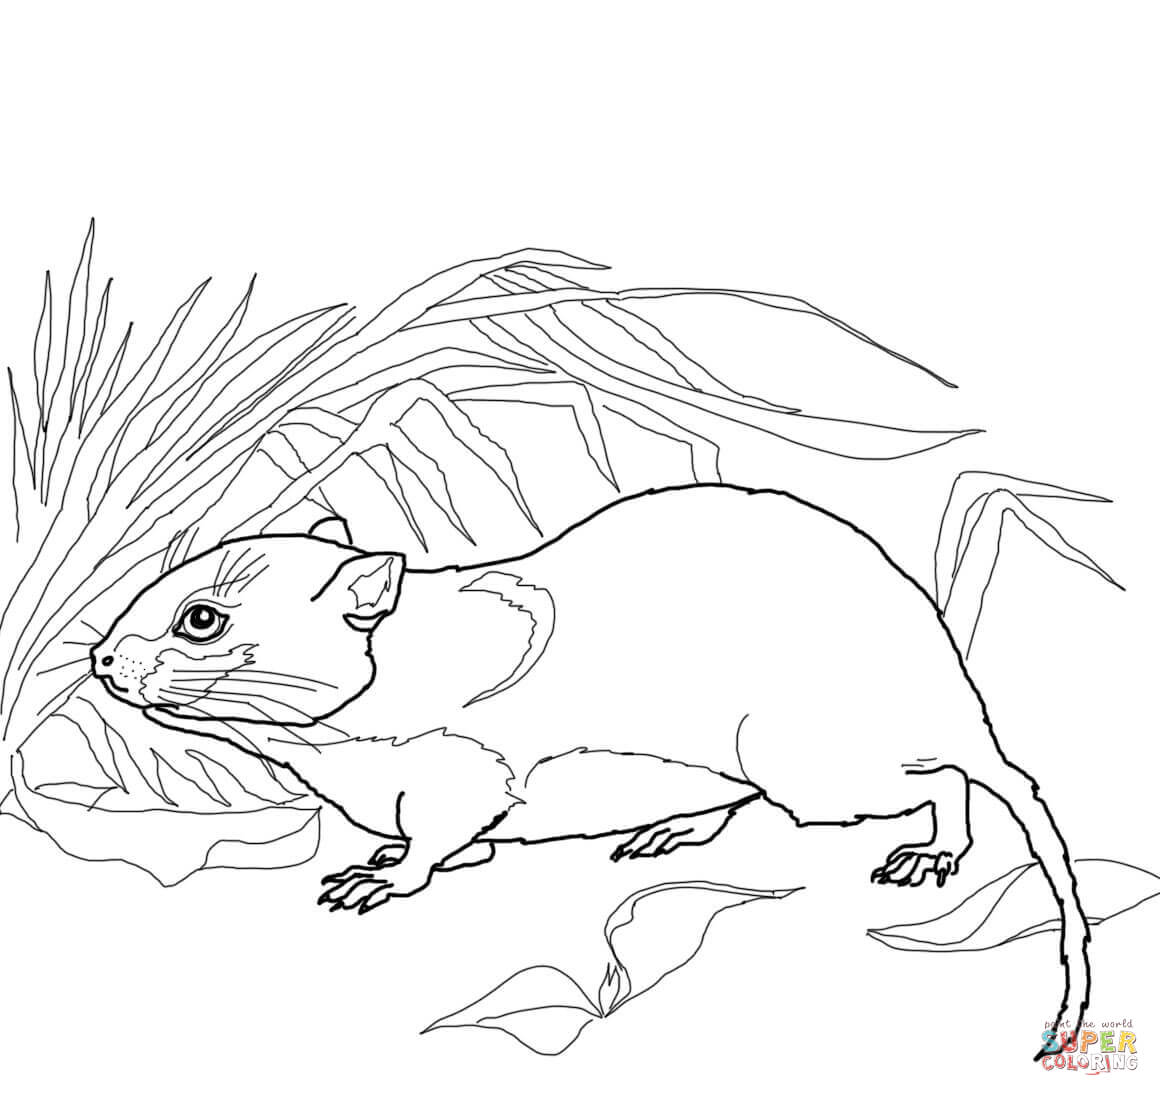 Vole coloring #5, Download drawings